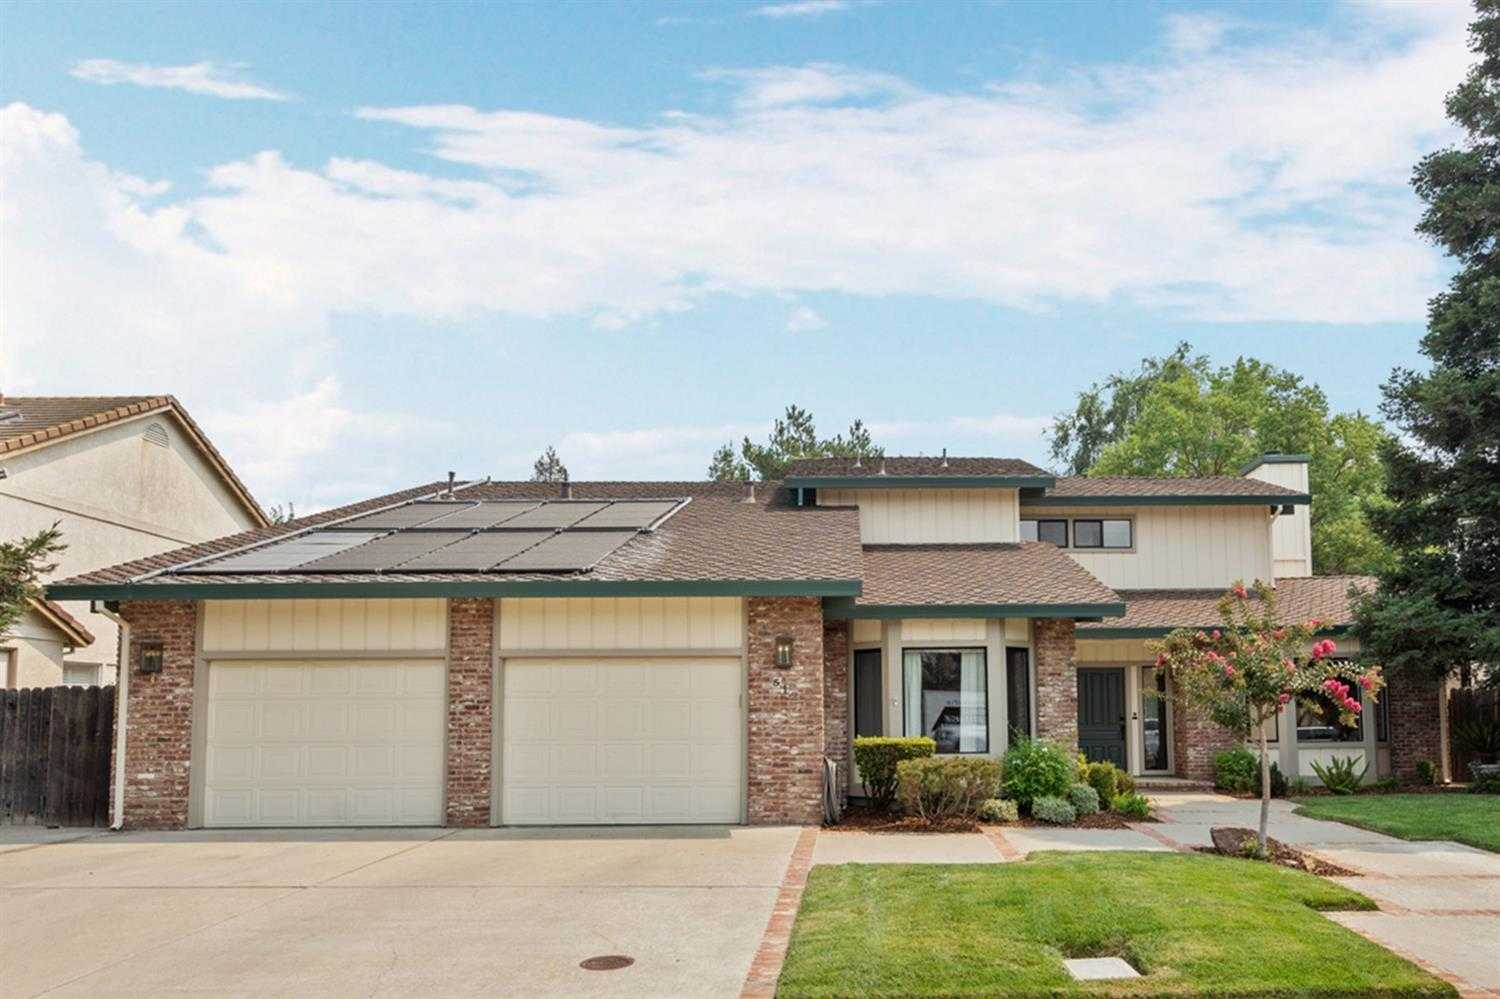 $962,000 - 4Br/3Ba -  for Sale in Davis